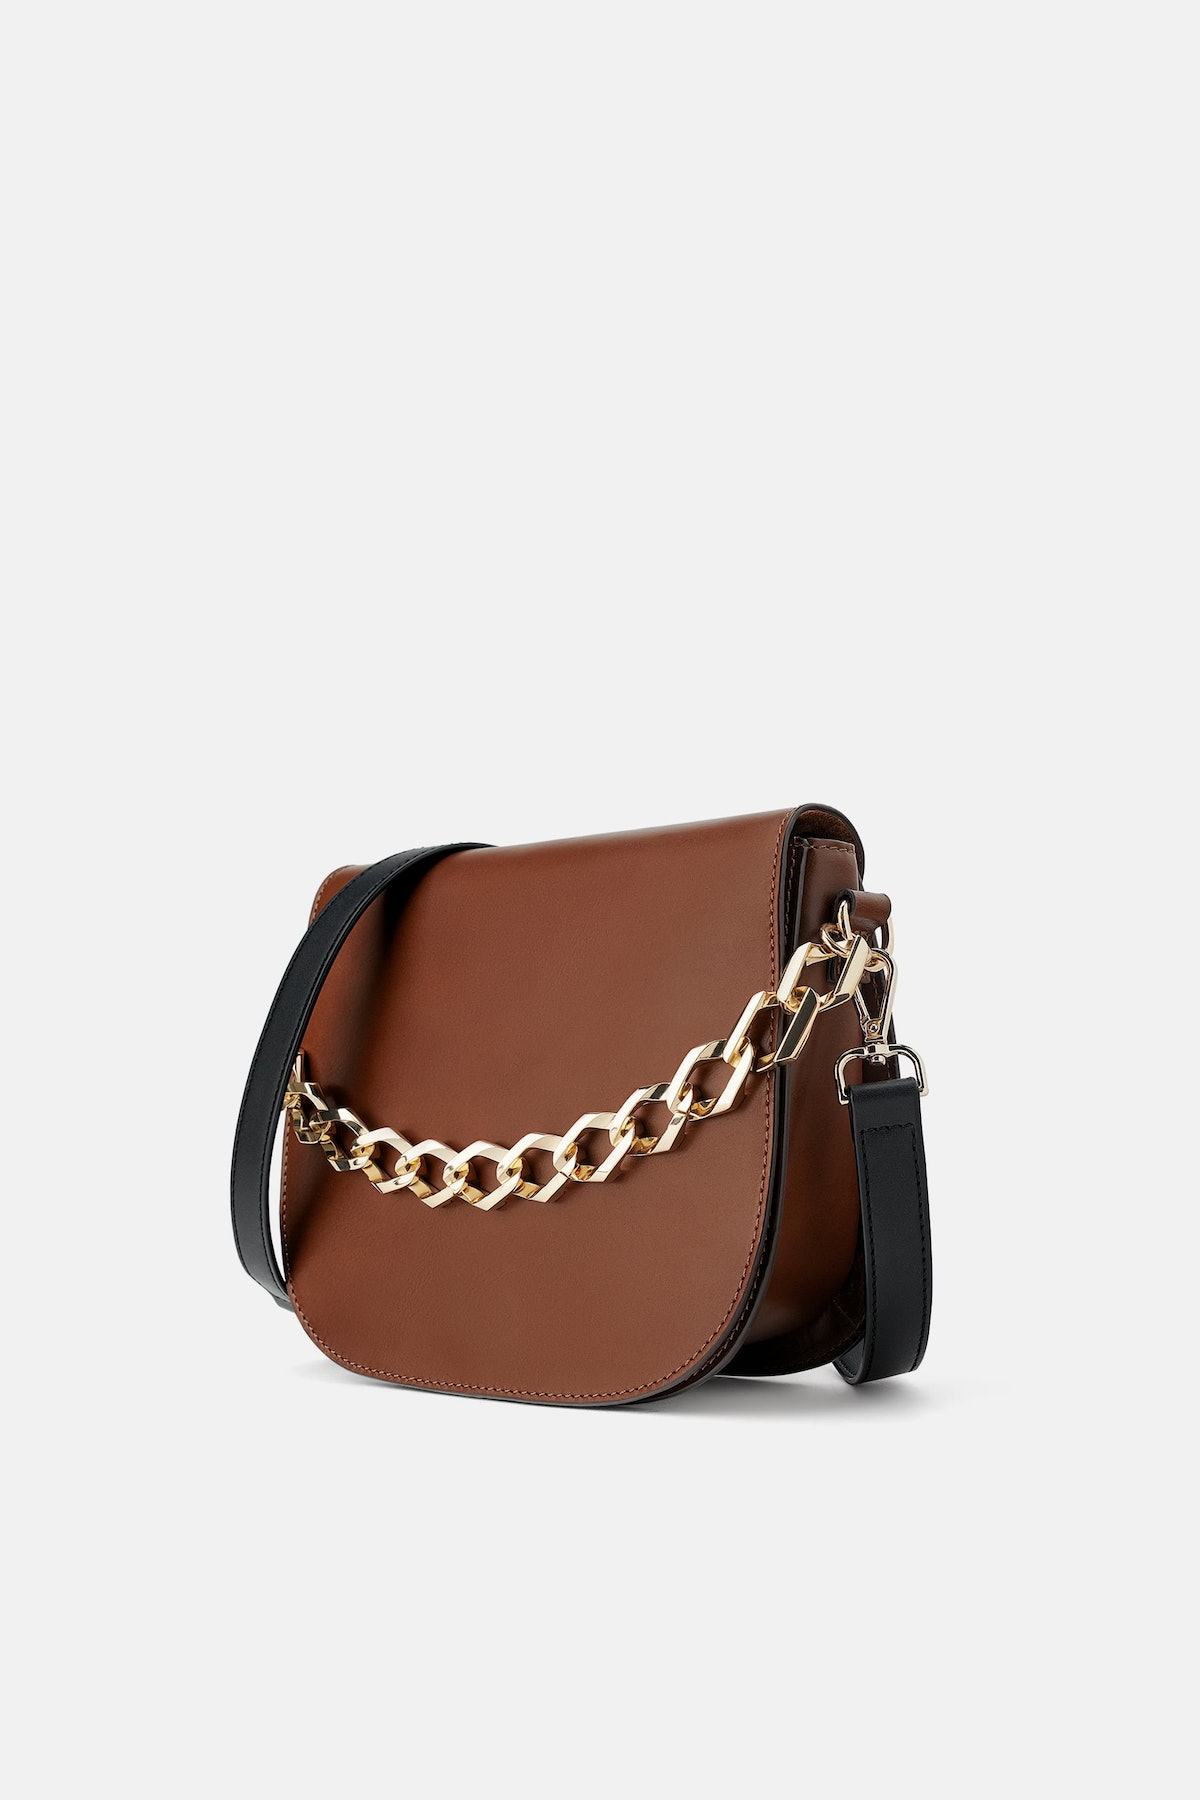 LEATHER CROSSBODY BAG WITH CHAIN